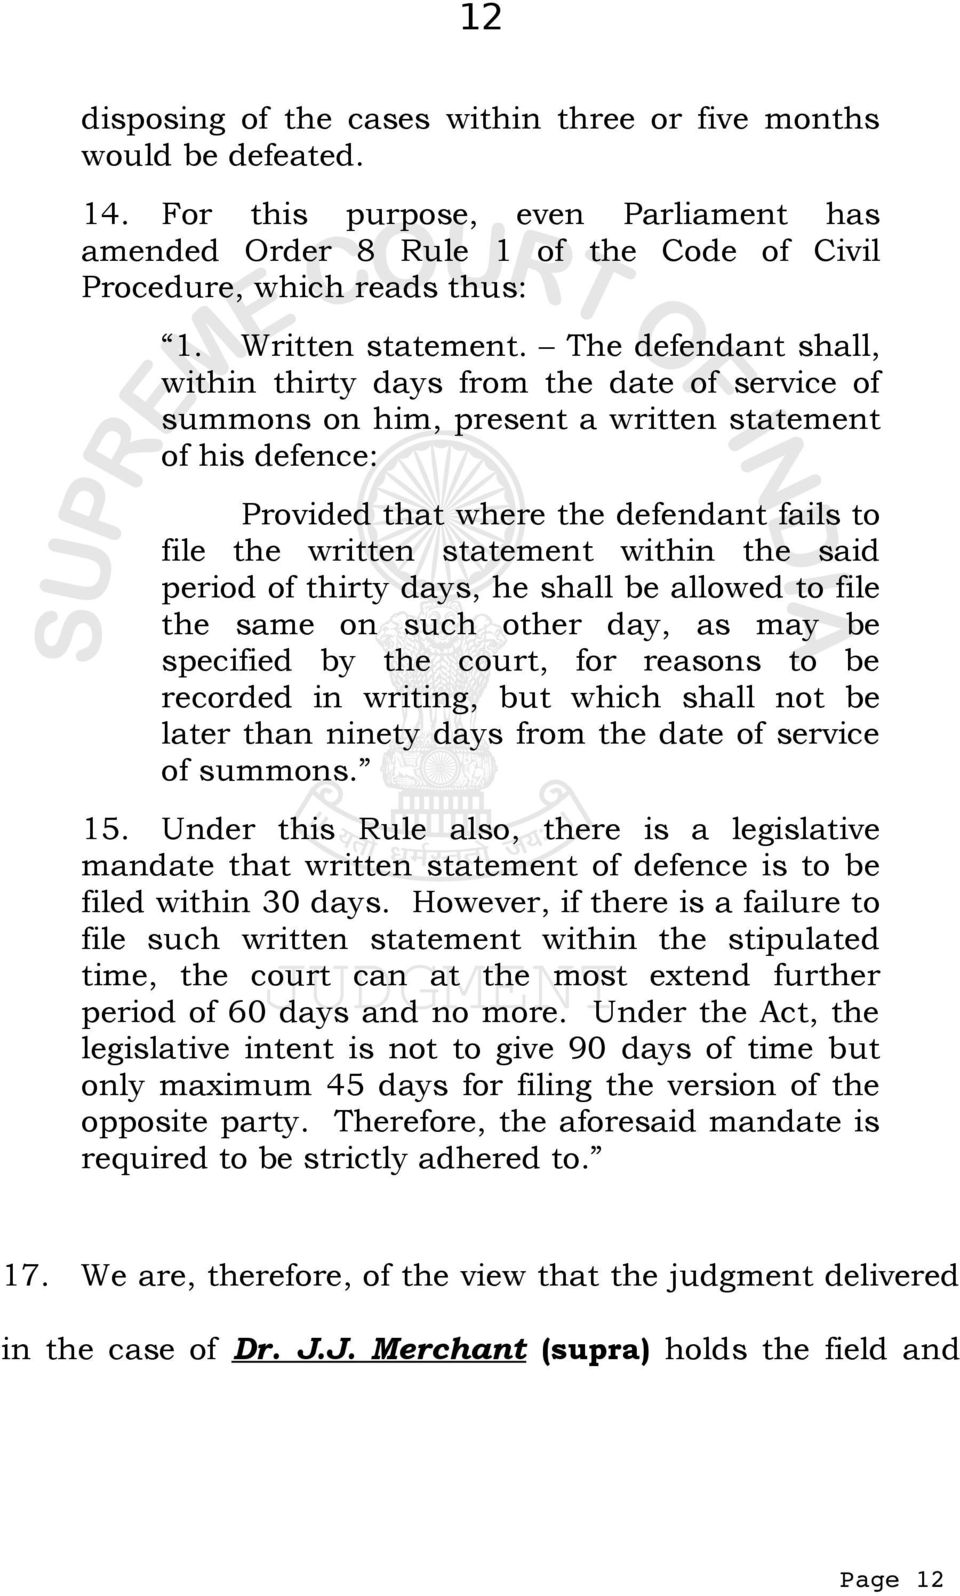 The defendant shall, within thirty days from the date of service of summons on him, present a written statement of his defence: Provided that where the defendant fails to file the written statement